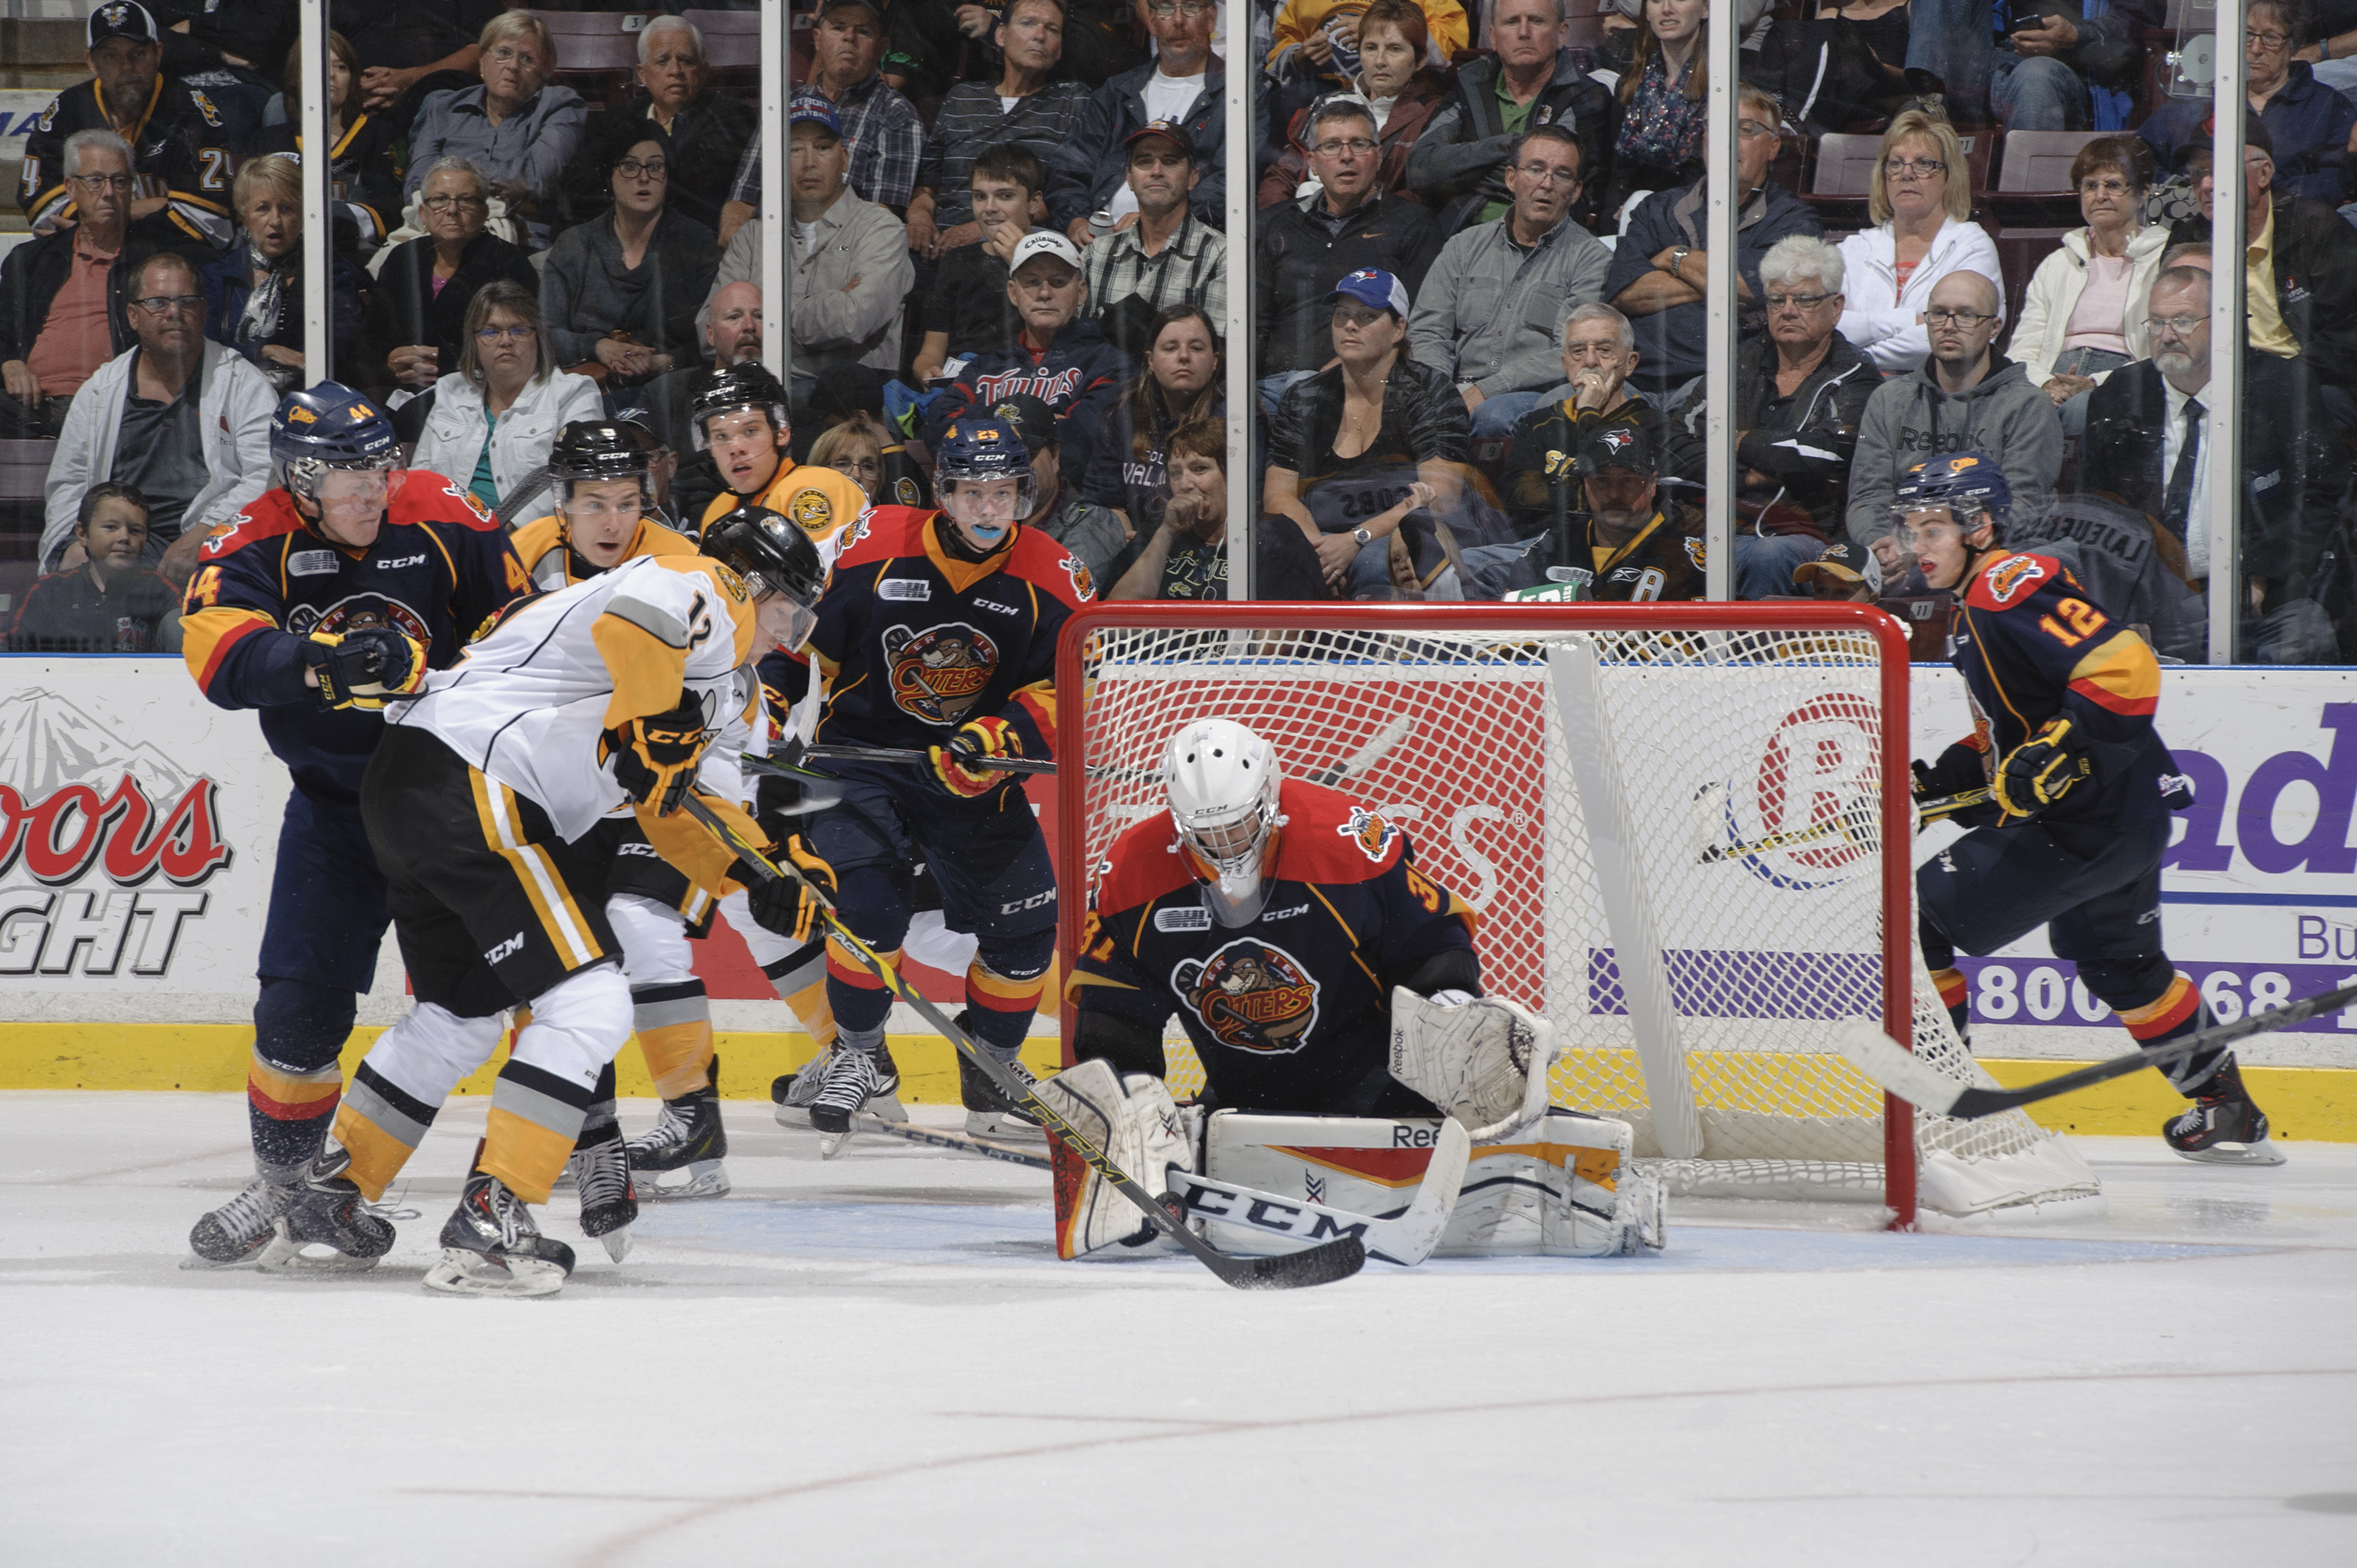 The Sarnia Sting vs the Erie Otters September 2015 (Photo courtesy of Metcalfe Photography)